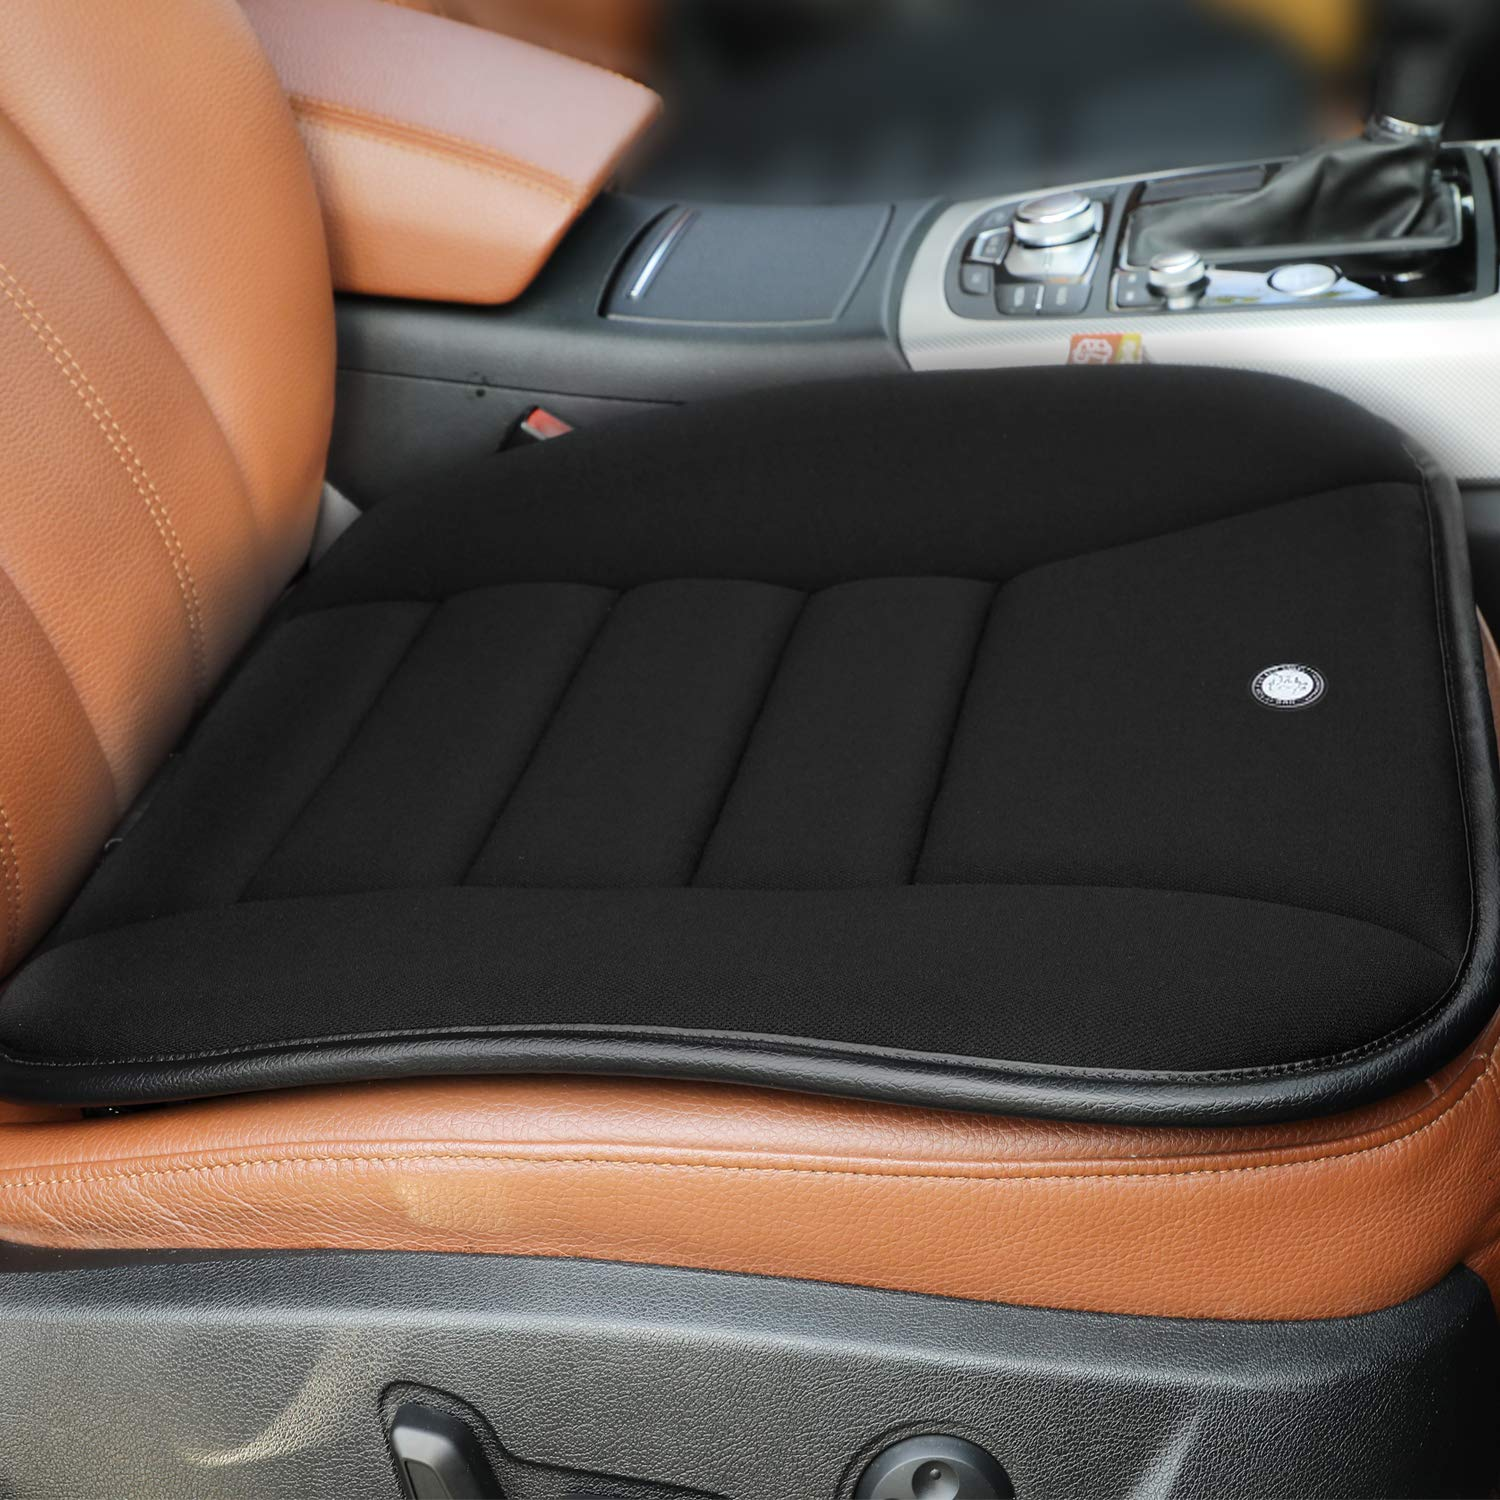 Car Seat Cushion Pad for Car Driver Seat Office Chair Home Use Memory Foam Seat Cushion Black